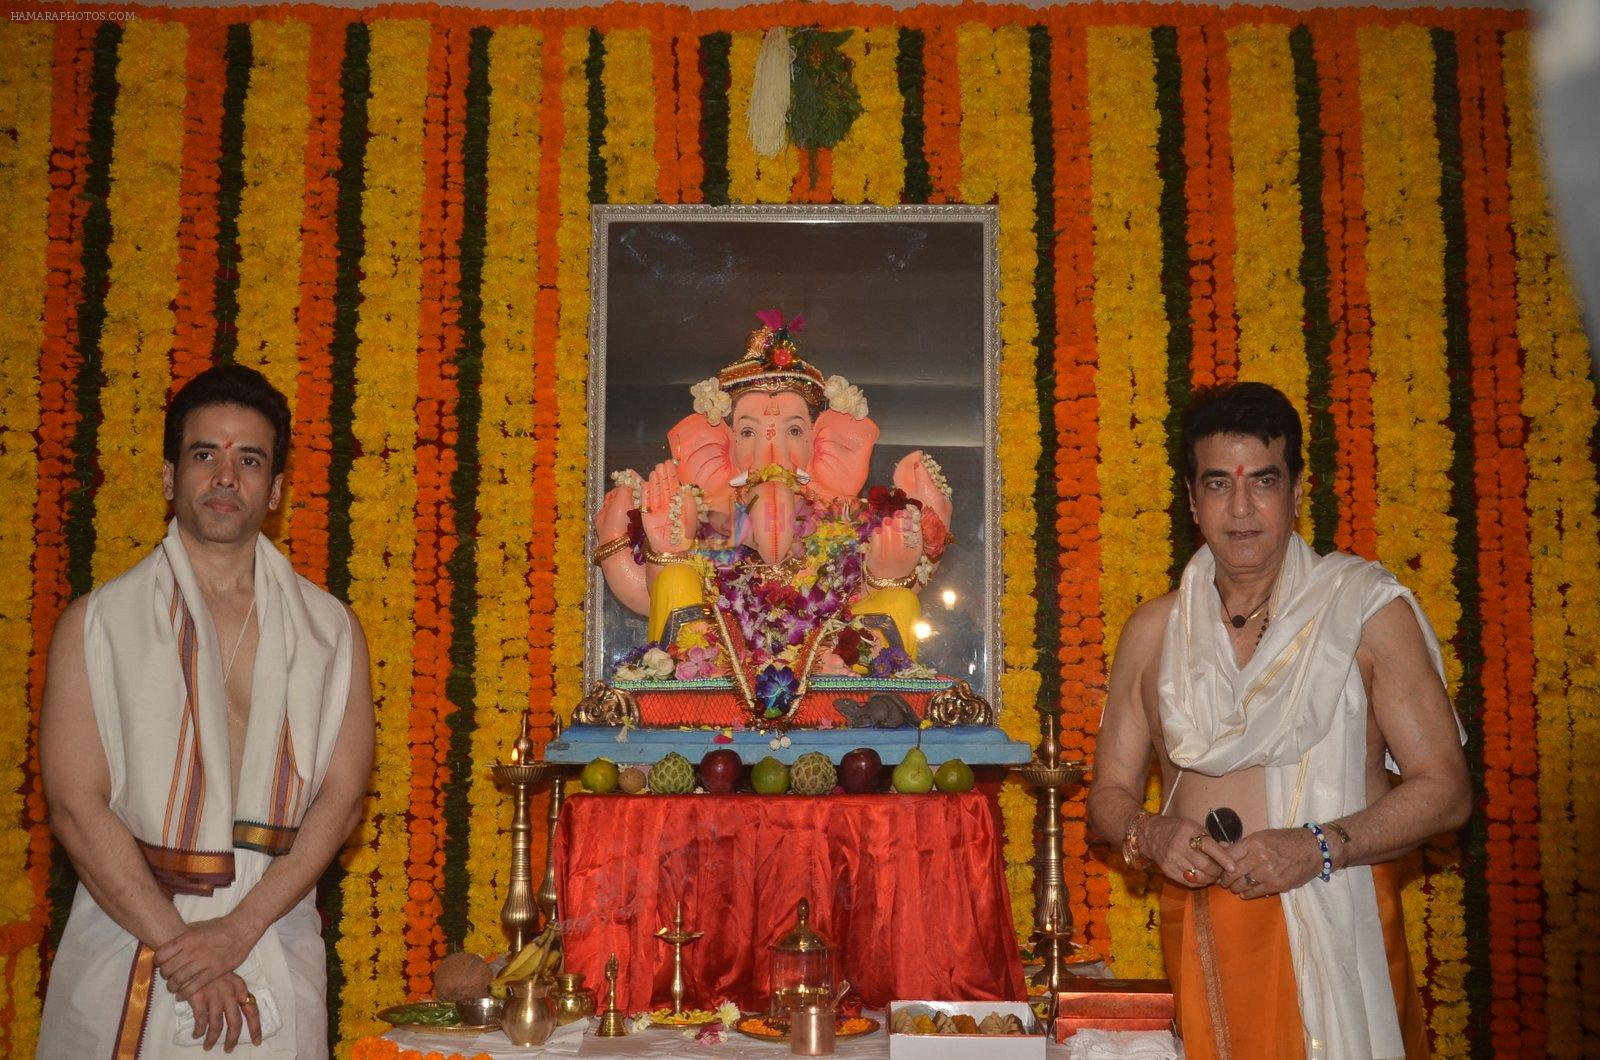 Jeetendra and Tusshar Kapoor Ganpati celebration on 5th Sept 2016